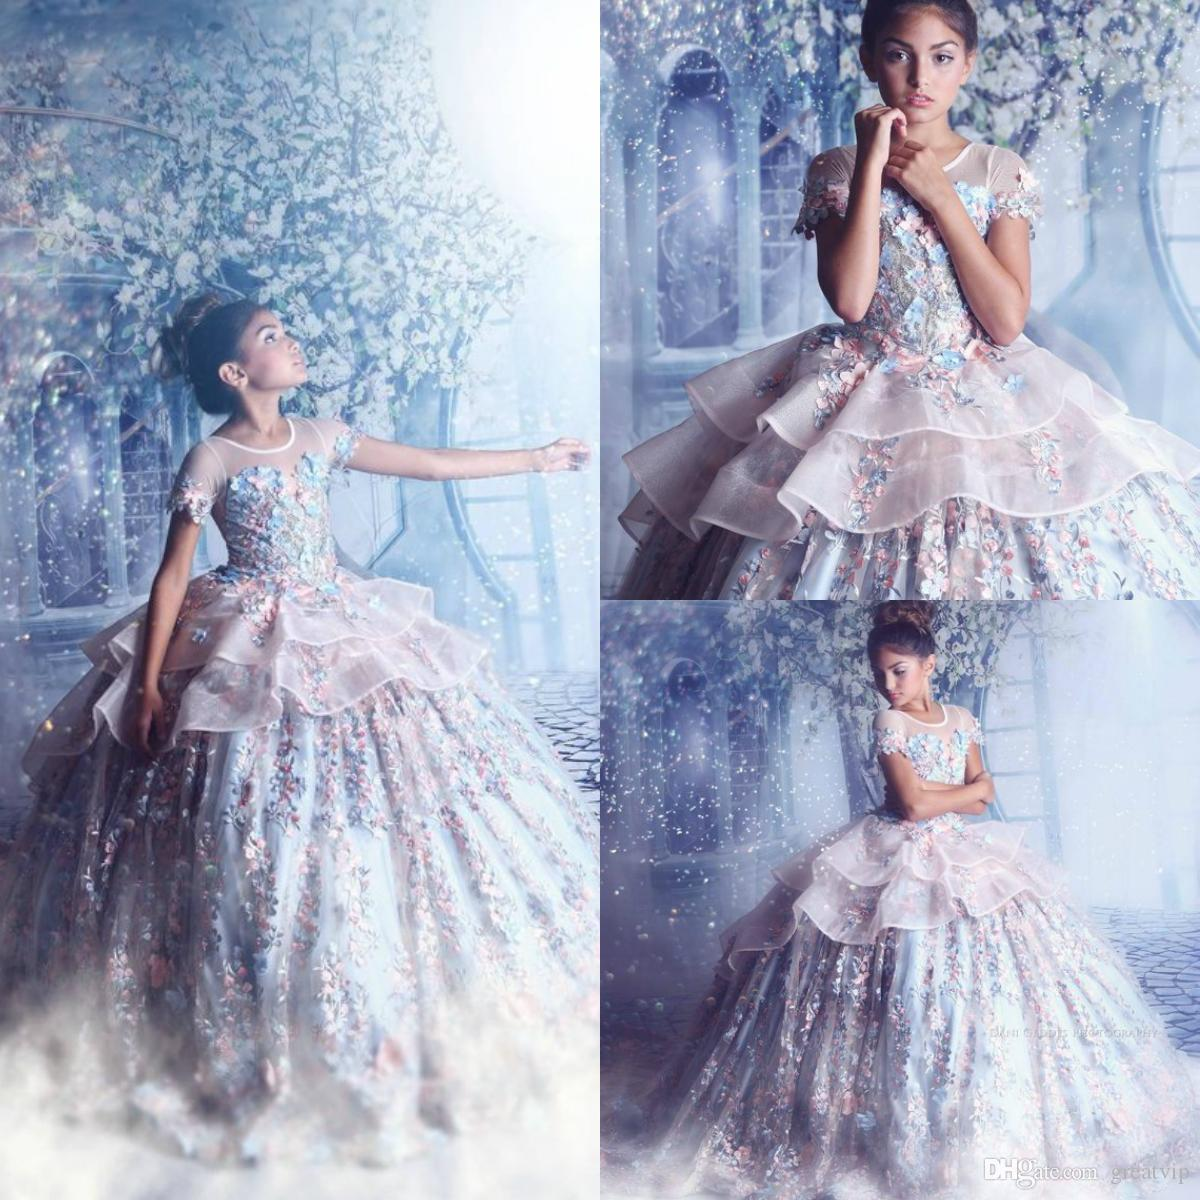 Princess Flowers Little Girls Pageant Dresses Extravagant Couture Ball Gown Beads Applique Teen Prom Gowns For Wedding Party Dress